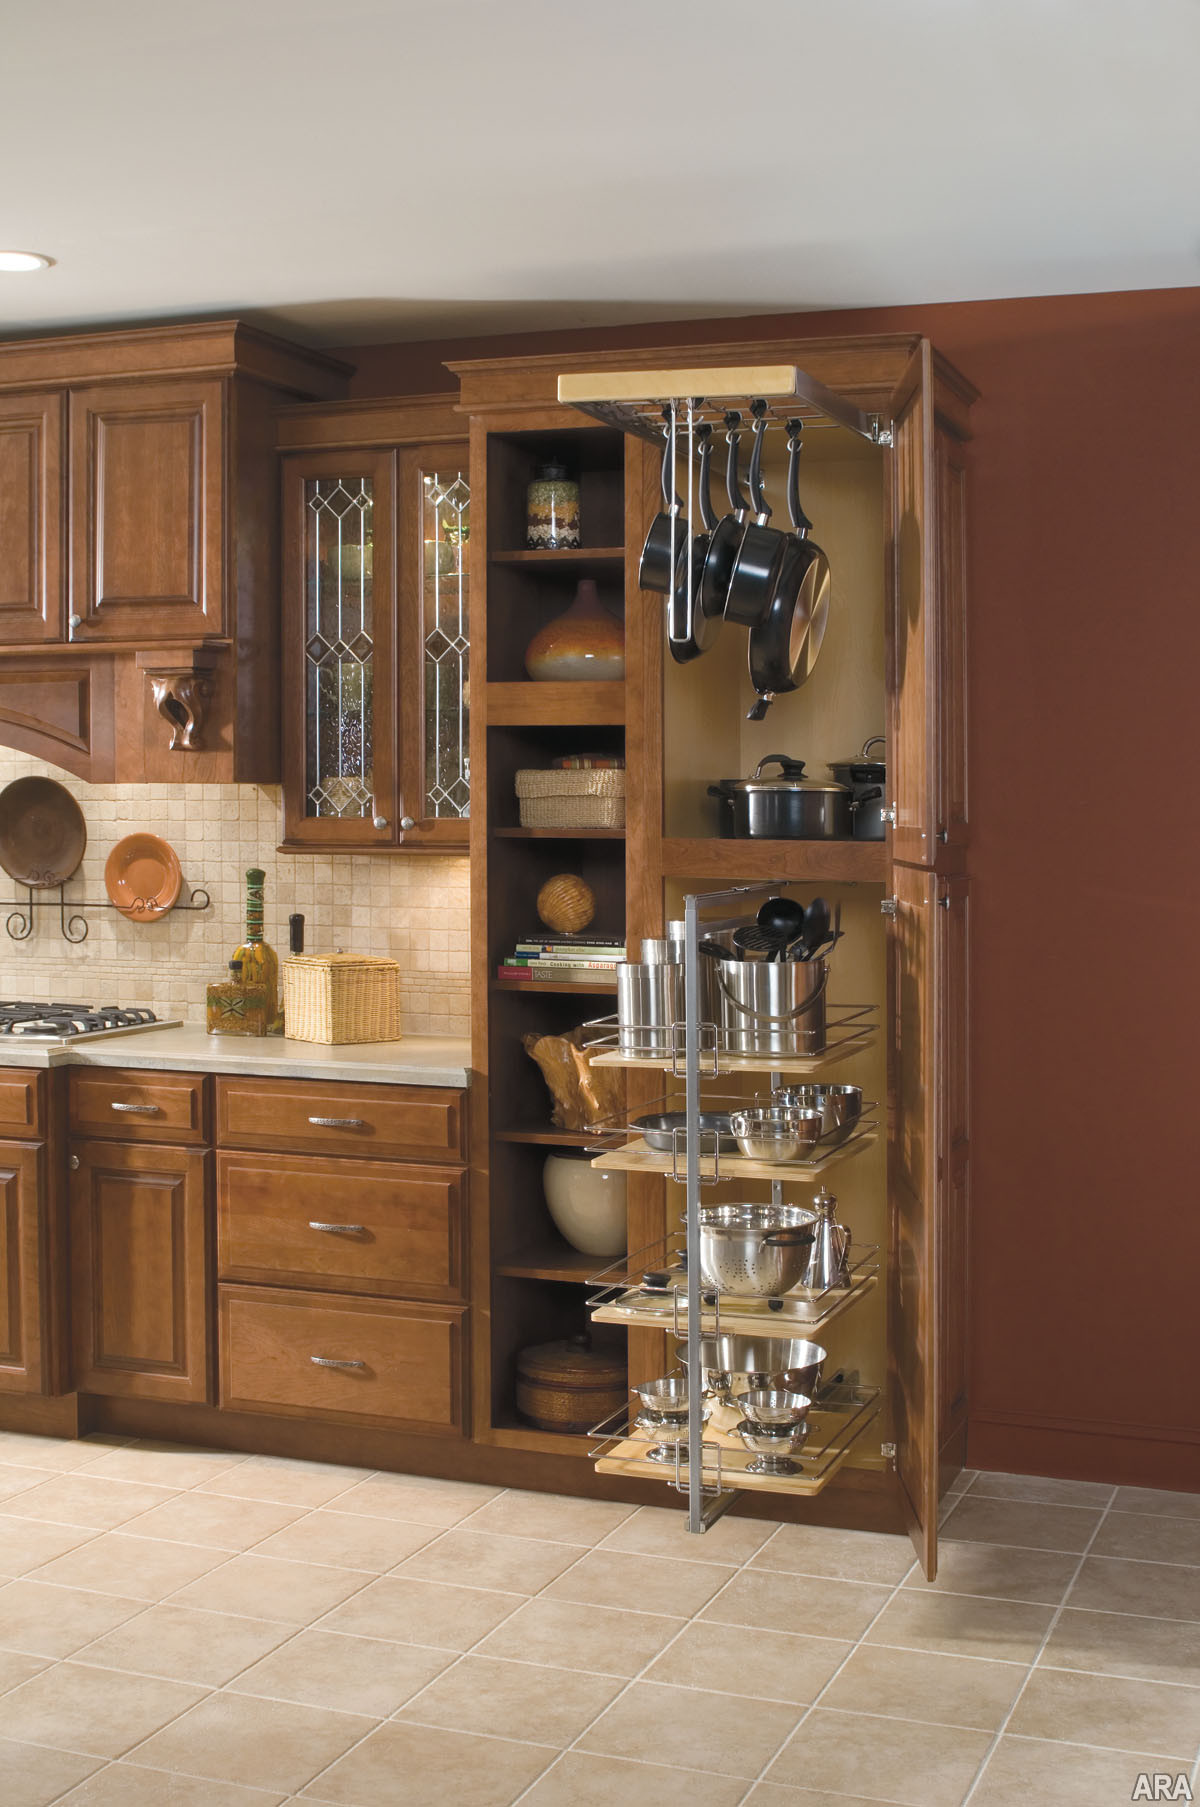 Best ideas about Kitchen Organizer Shelf . Save or Pin Tall kitchen utility cabinets Now.